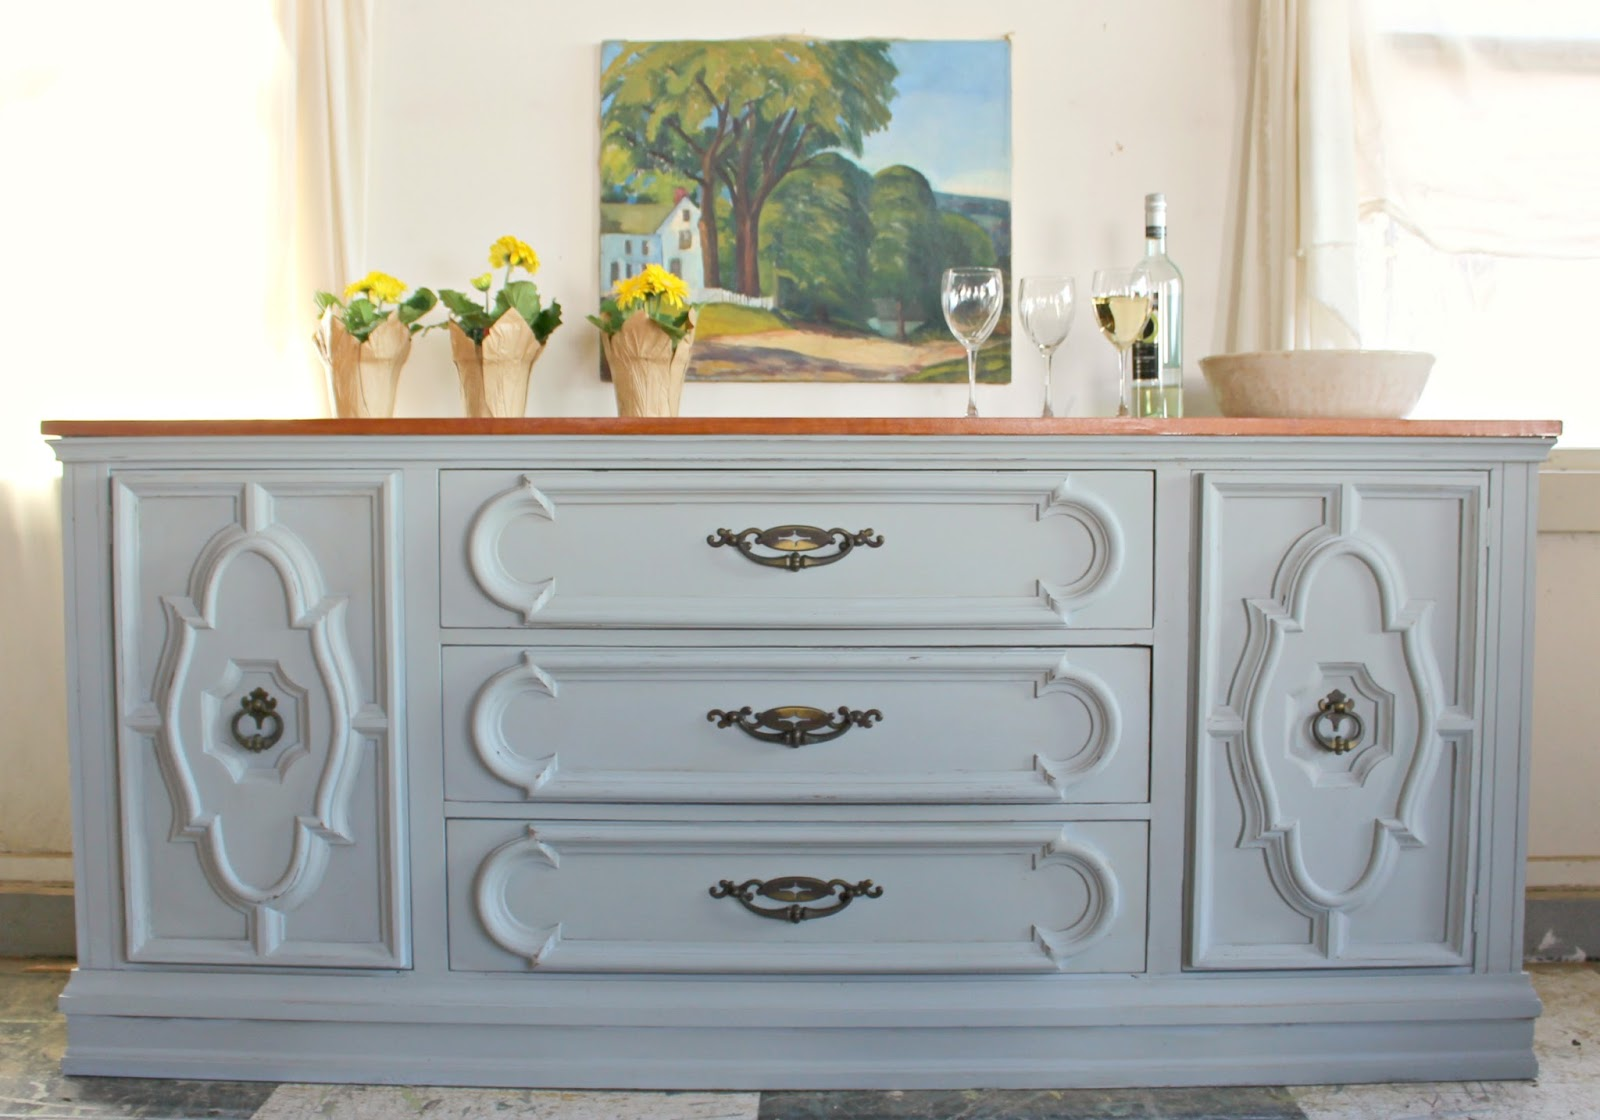 Heir and Space: A Vintage Pecan Sideboard in Gray and Mustard